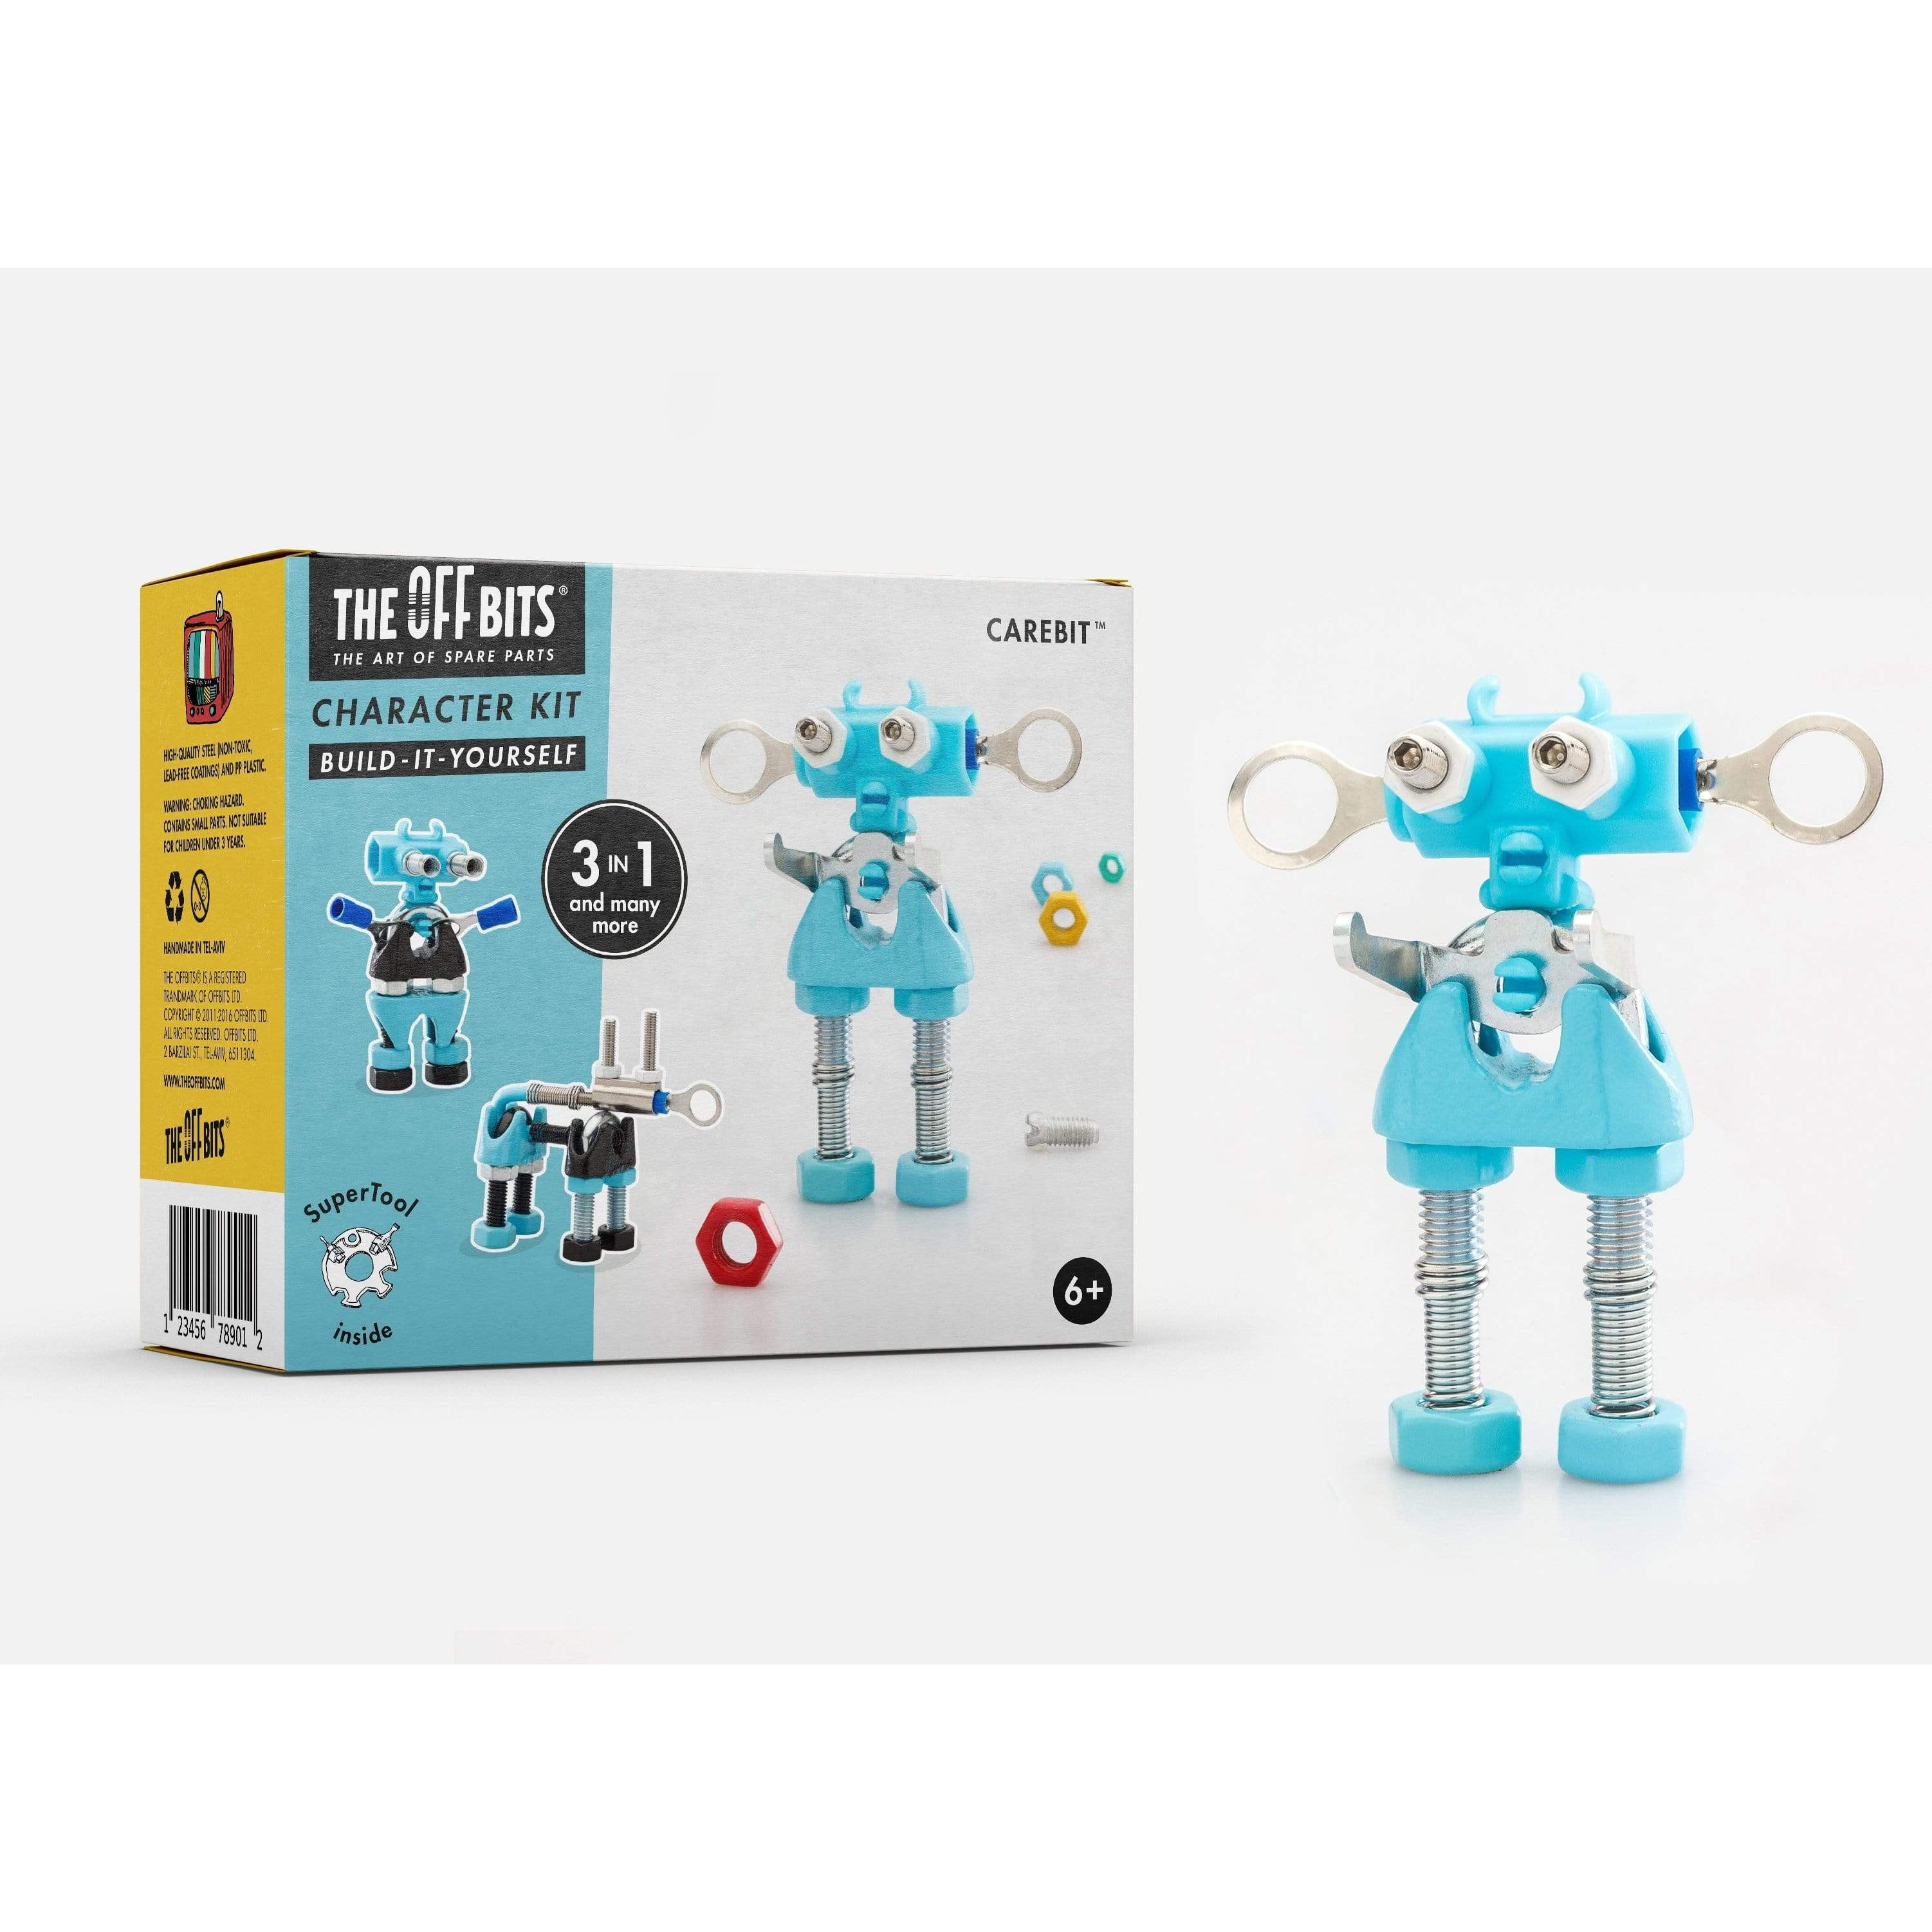 BLUE 3-in-1 Robot Kit from The OFFBITS